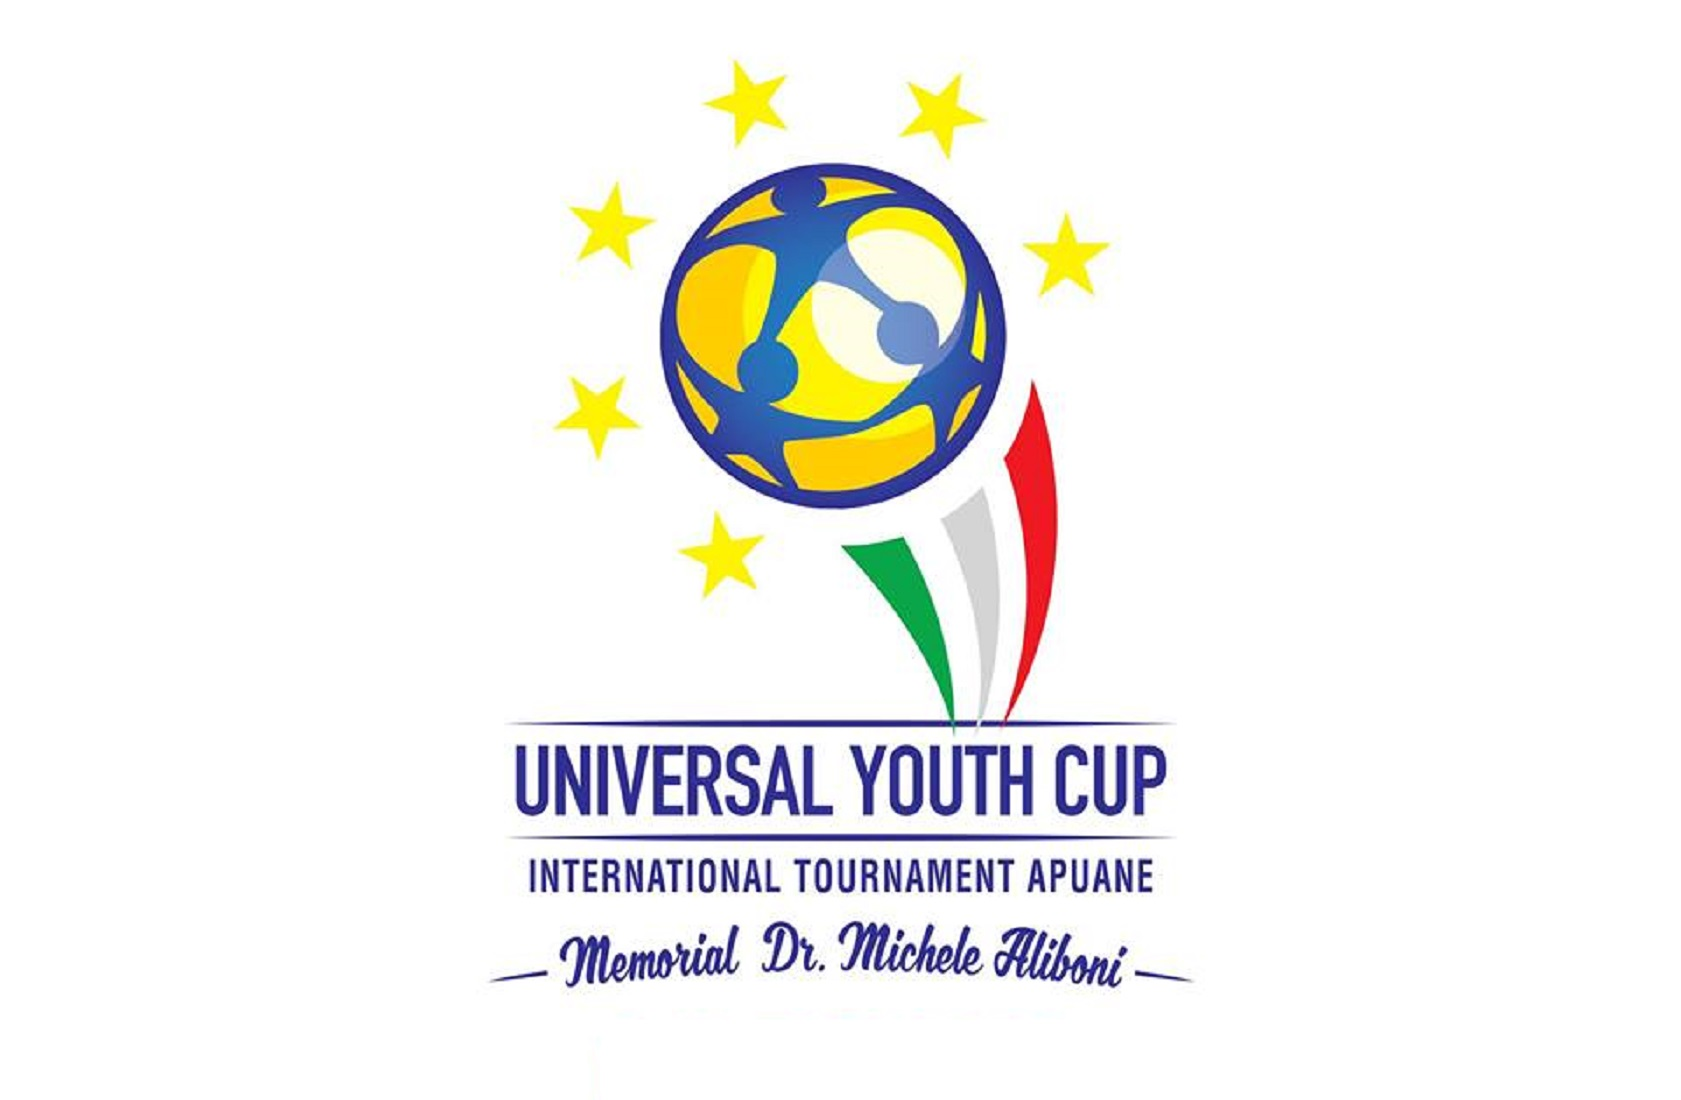 universal youth cup